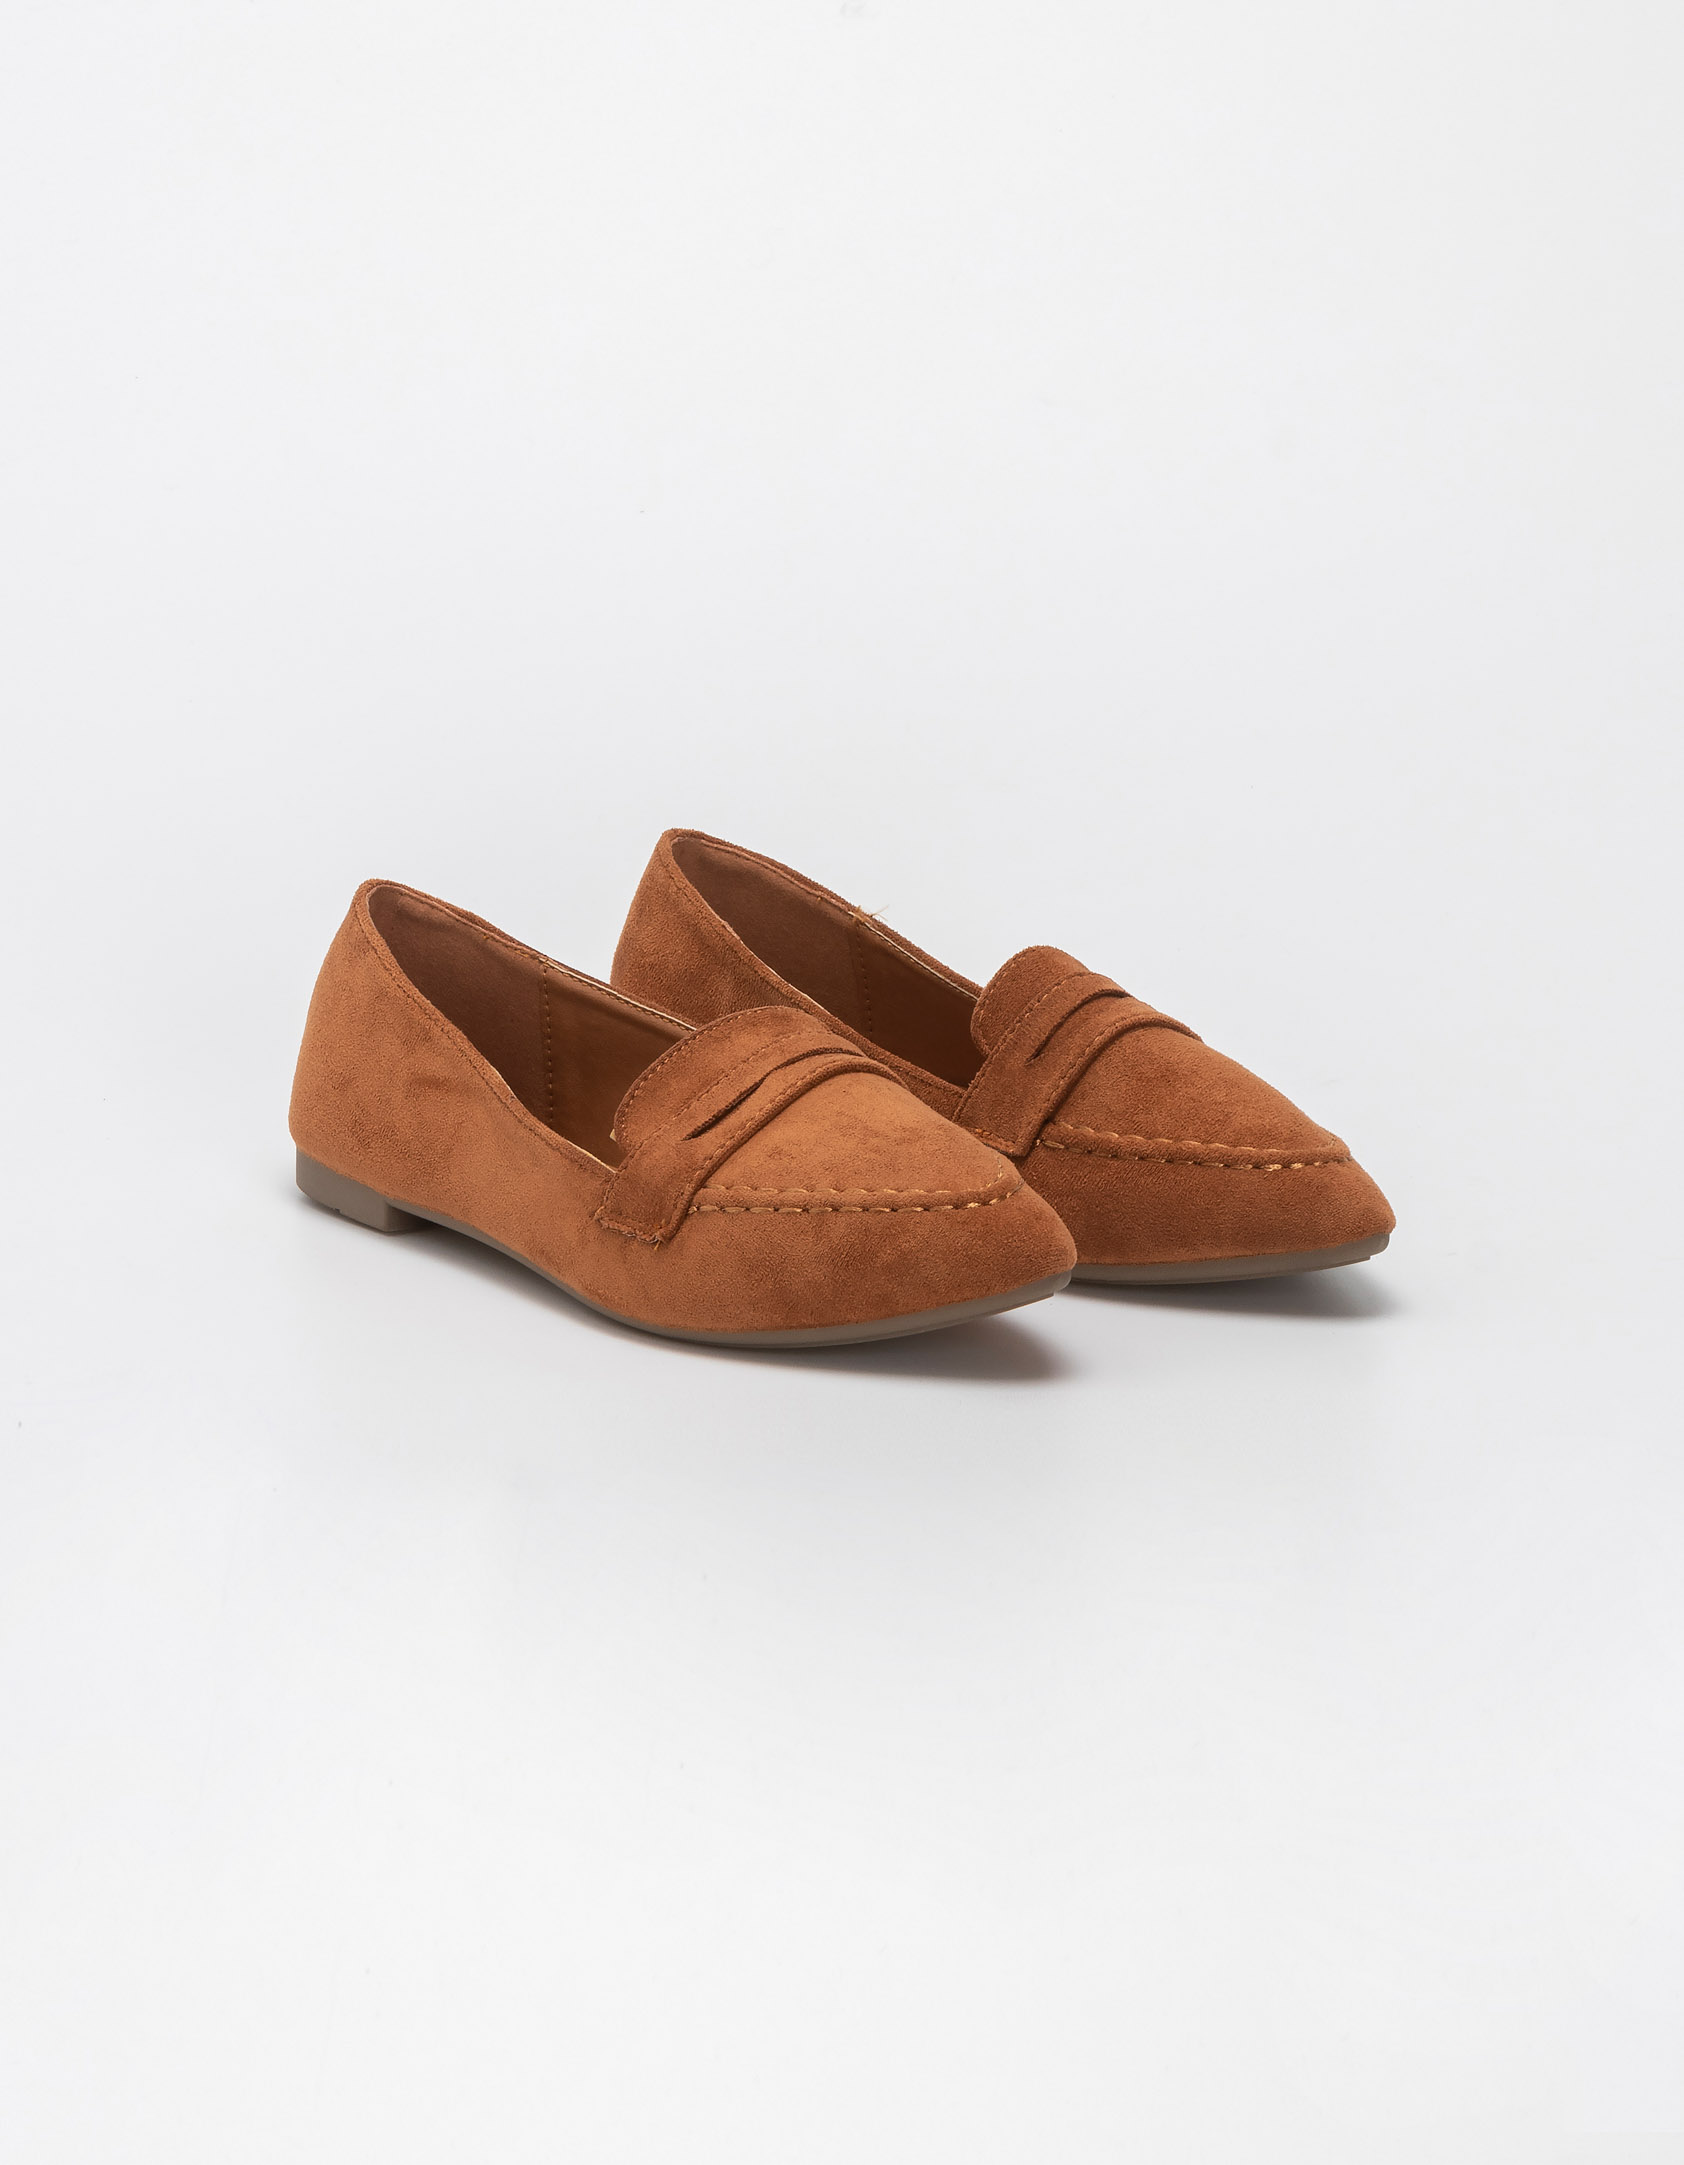 Suede loafers - Κάμελ